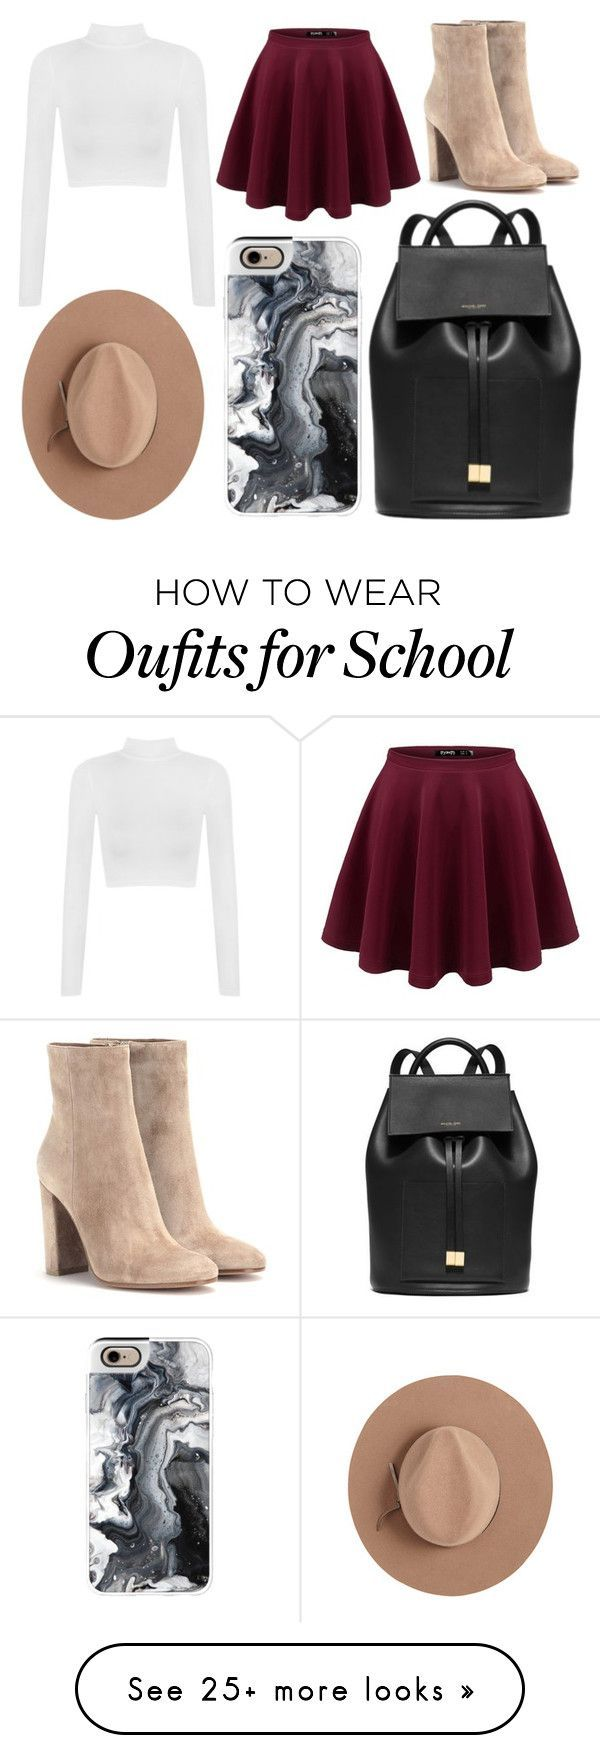 """School Day"" by susanna-trad on Polyvore featuring Gianvito Rossi, WearAll, Michael Kors, Satya Twena and Casetify"